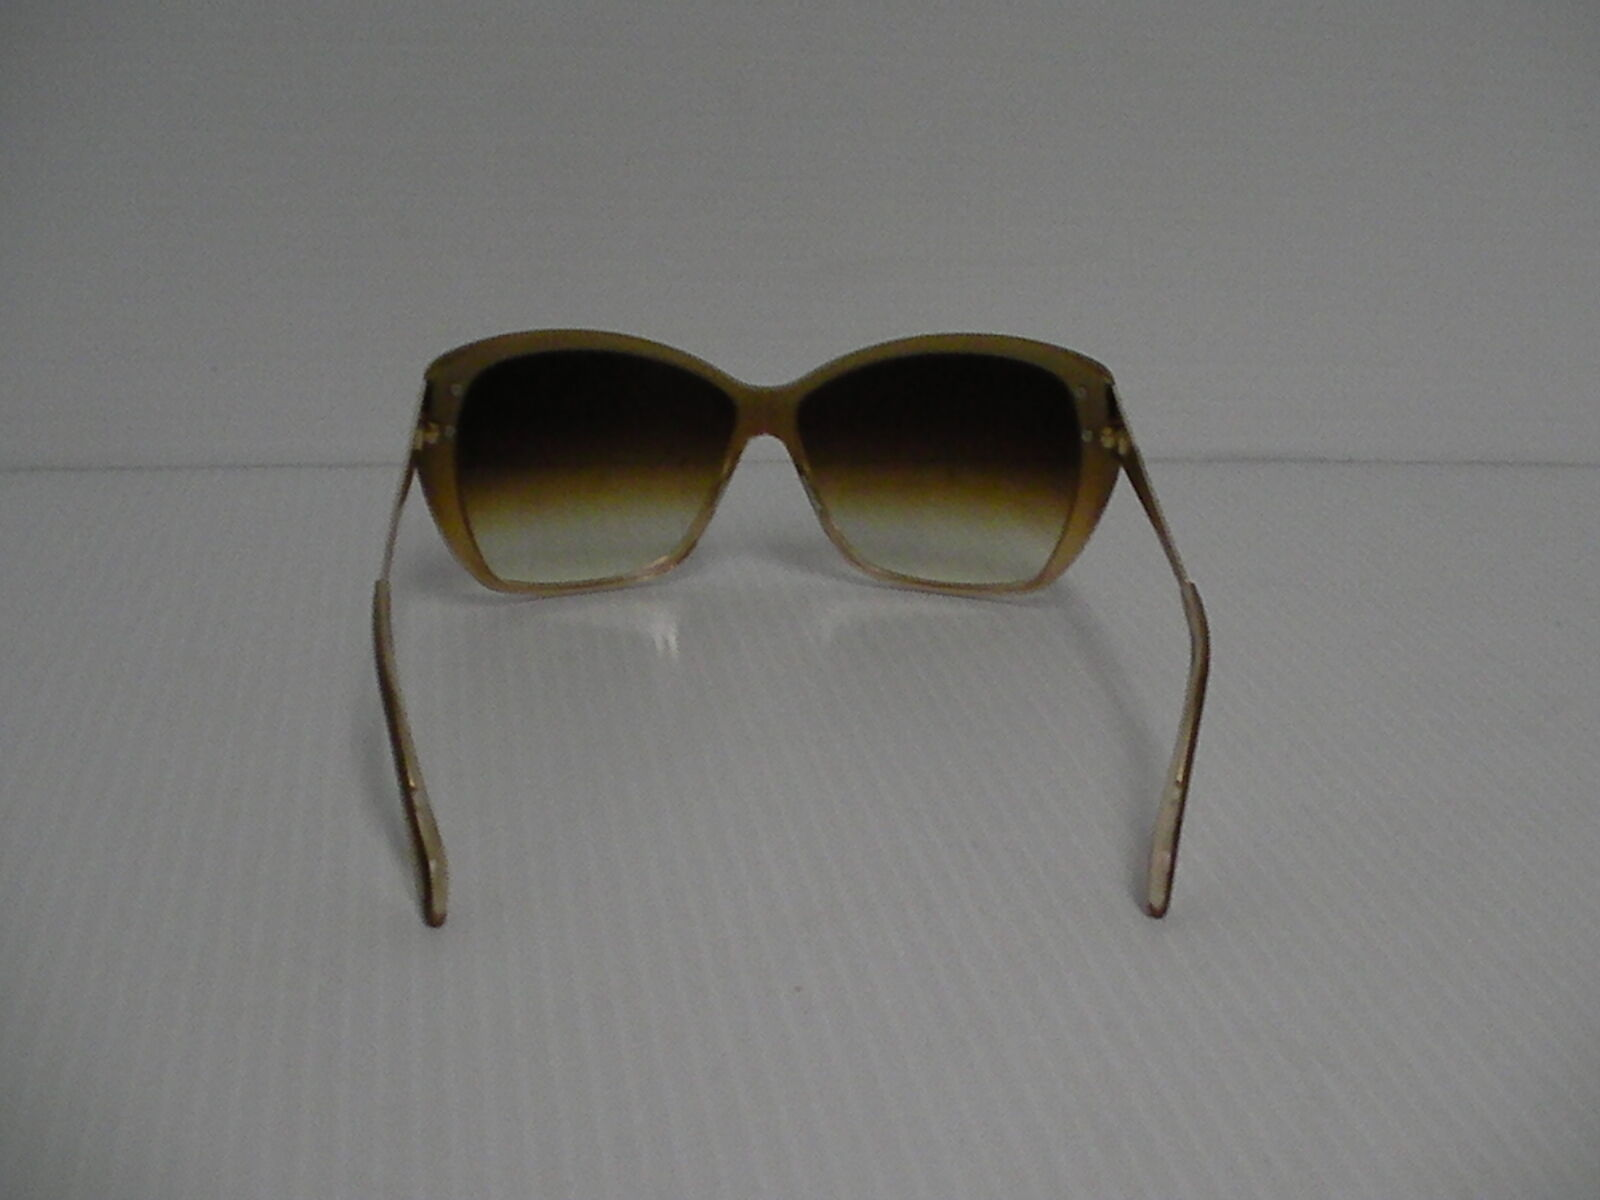 Womens OLIVER PEOPLES NEW SUNGLASSES SKYLA HAMMERED GOLD AMBER LENSE image 4